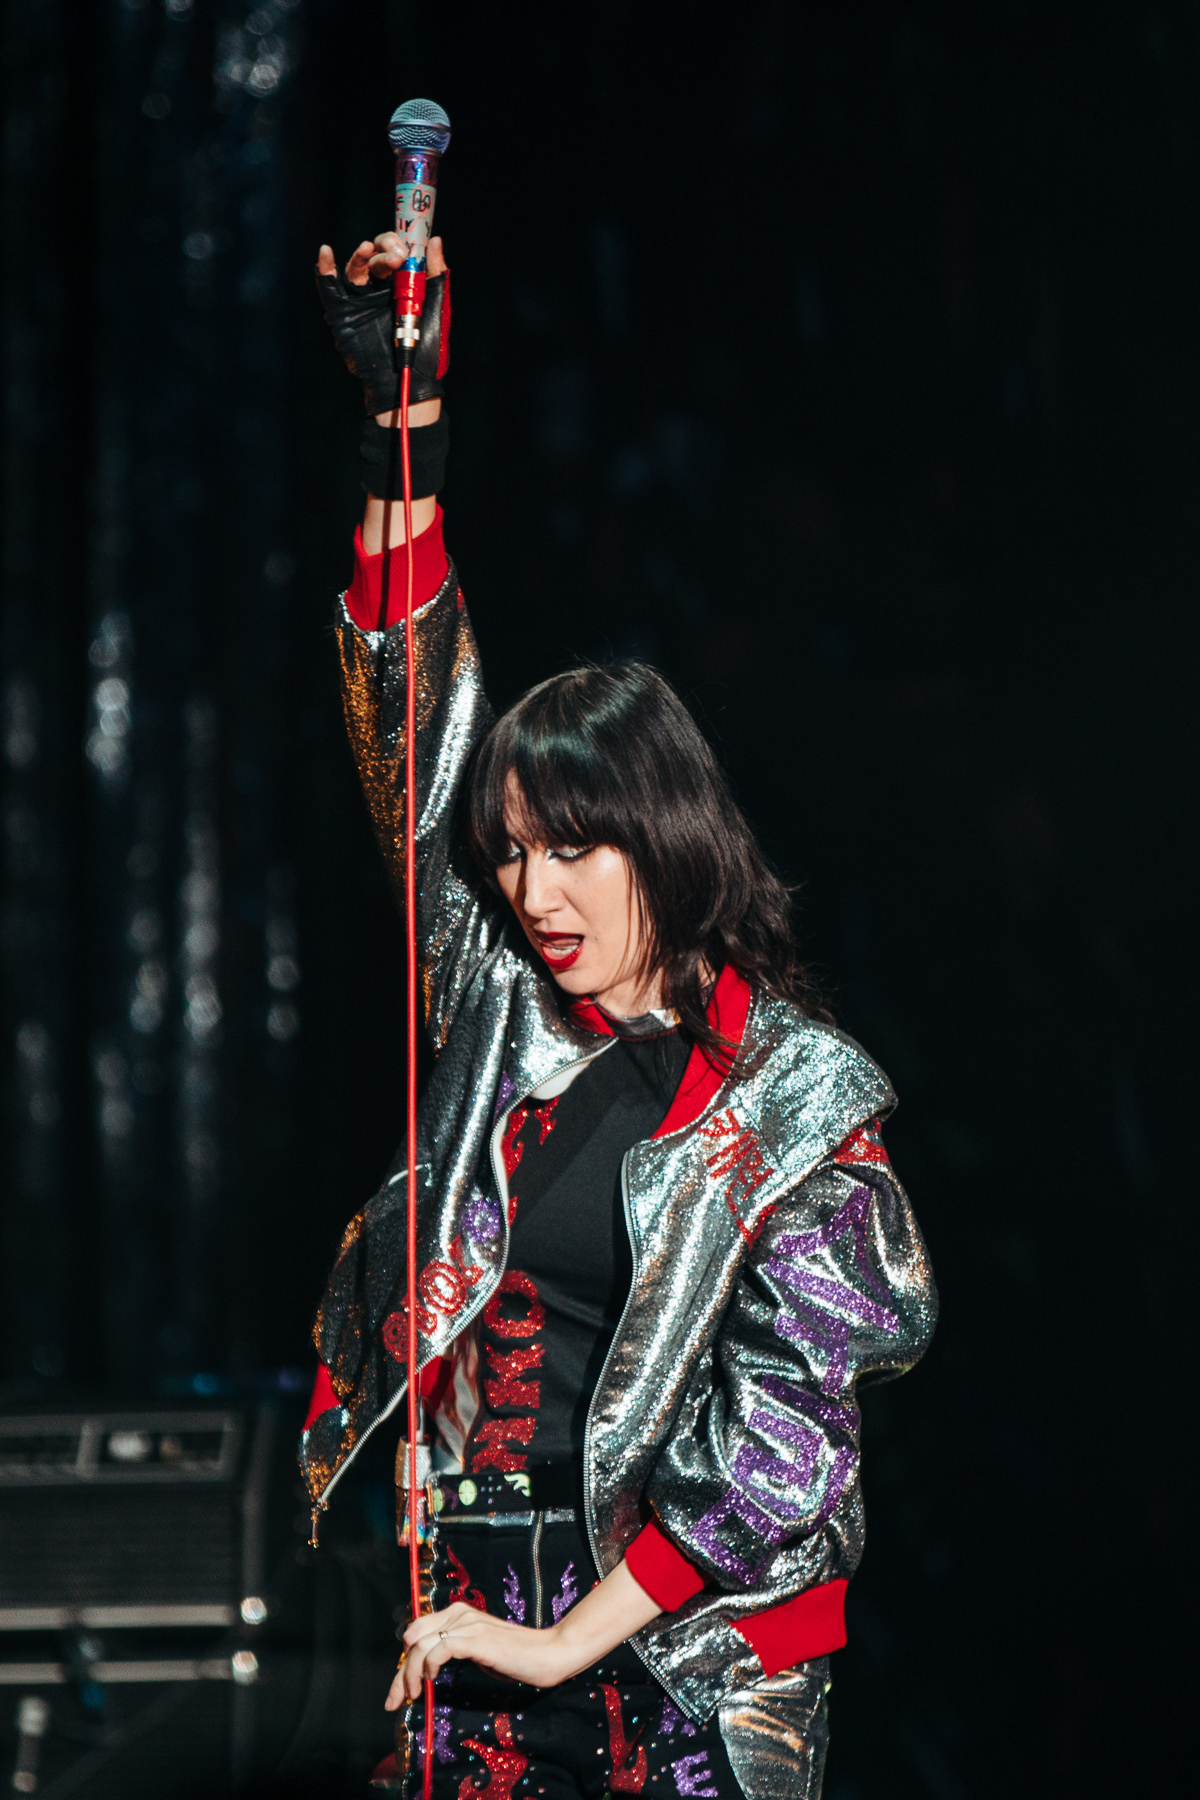 180506-kirby-gladstein-photograpy-Yeah-Yeah-Yeahs-Hollywood-Bowl-LA-6956.jpg